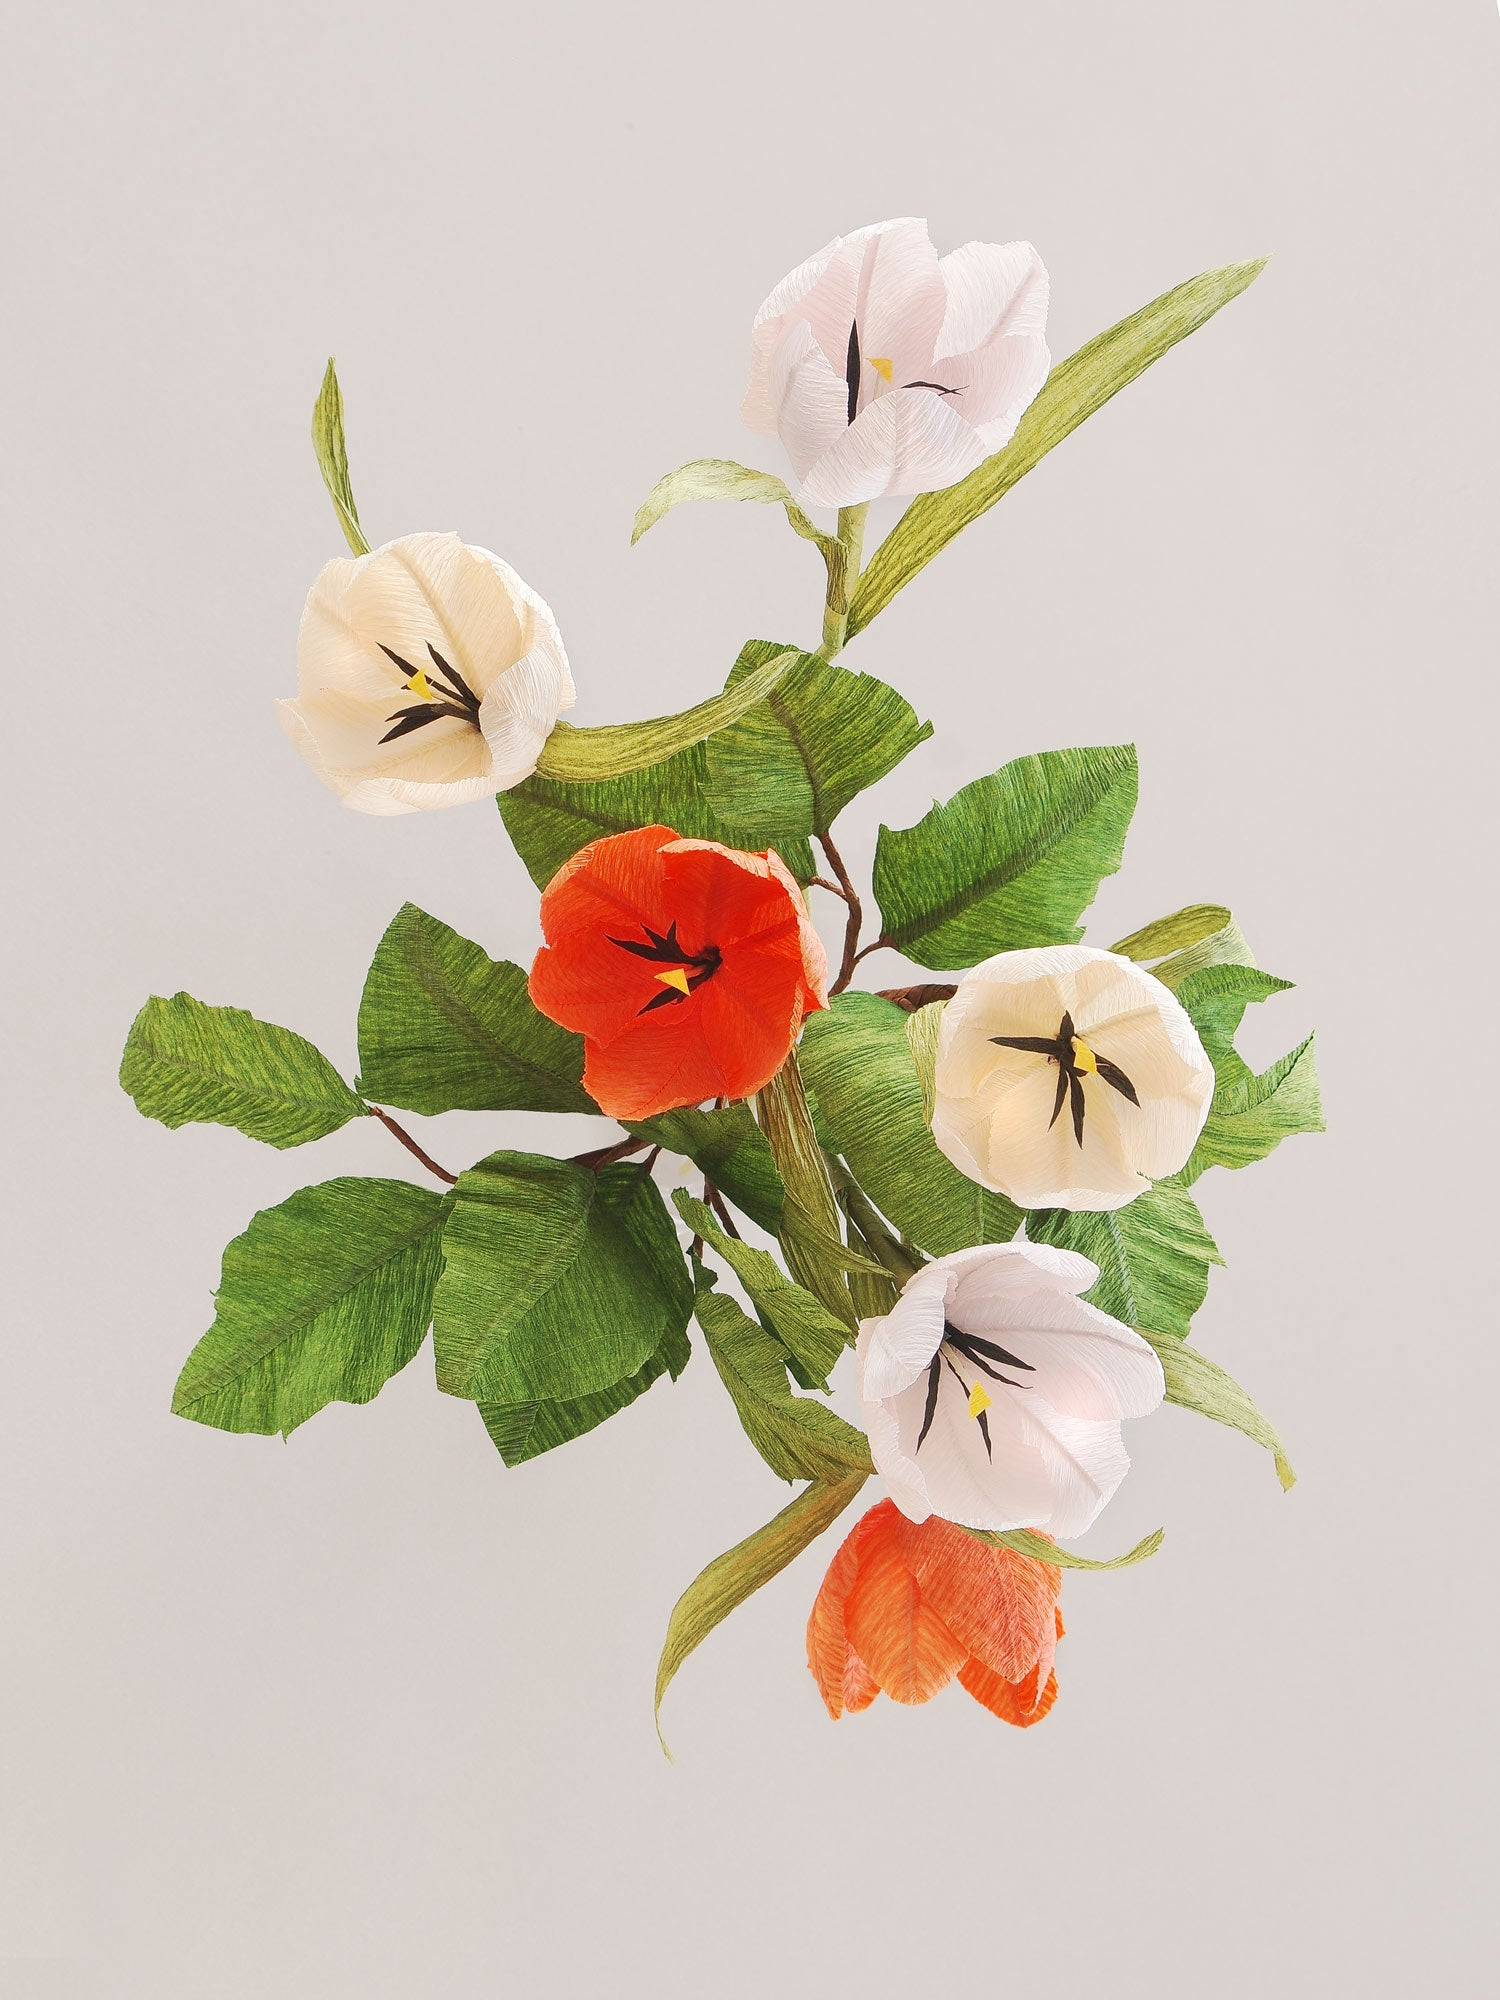 _<h1>Go Dutch</h1><p>Peach, pale pink and bright orange tulips accented with bright green leaves.</p>